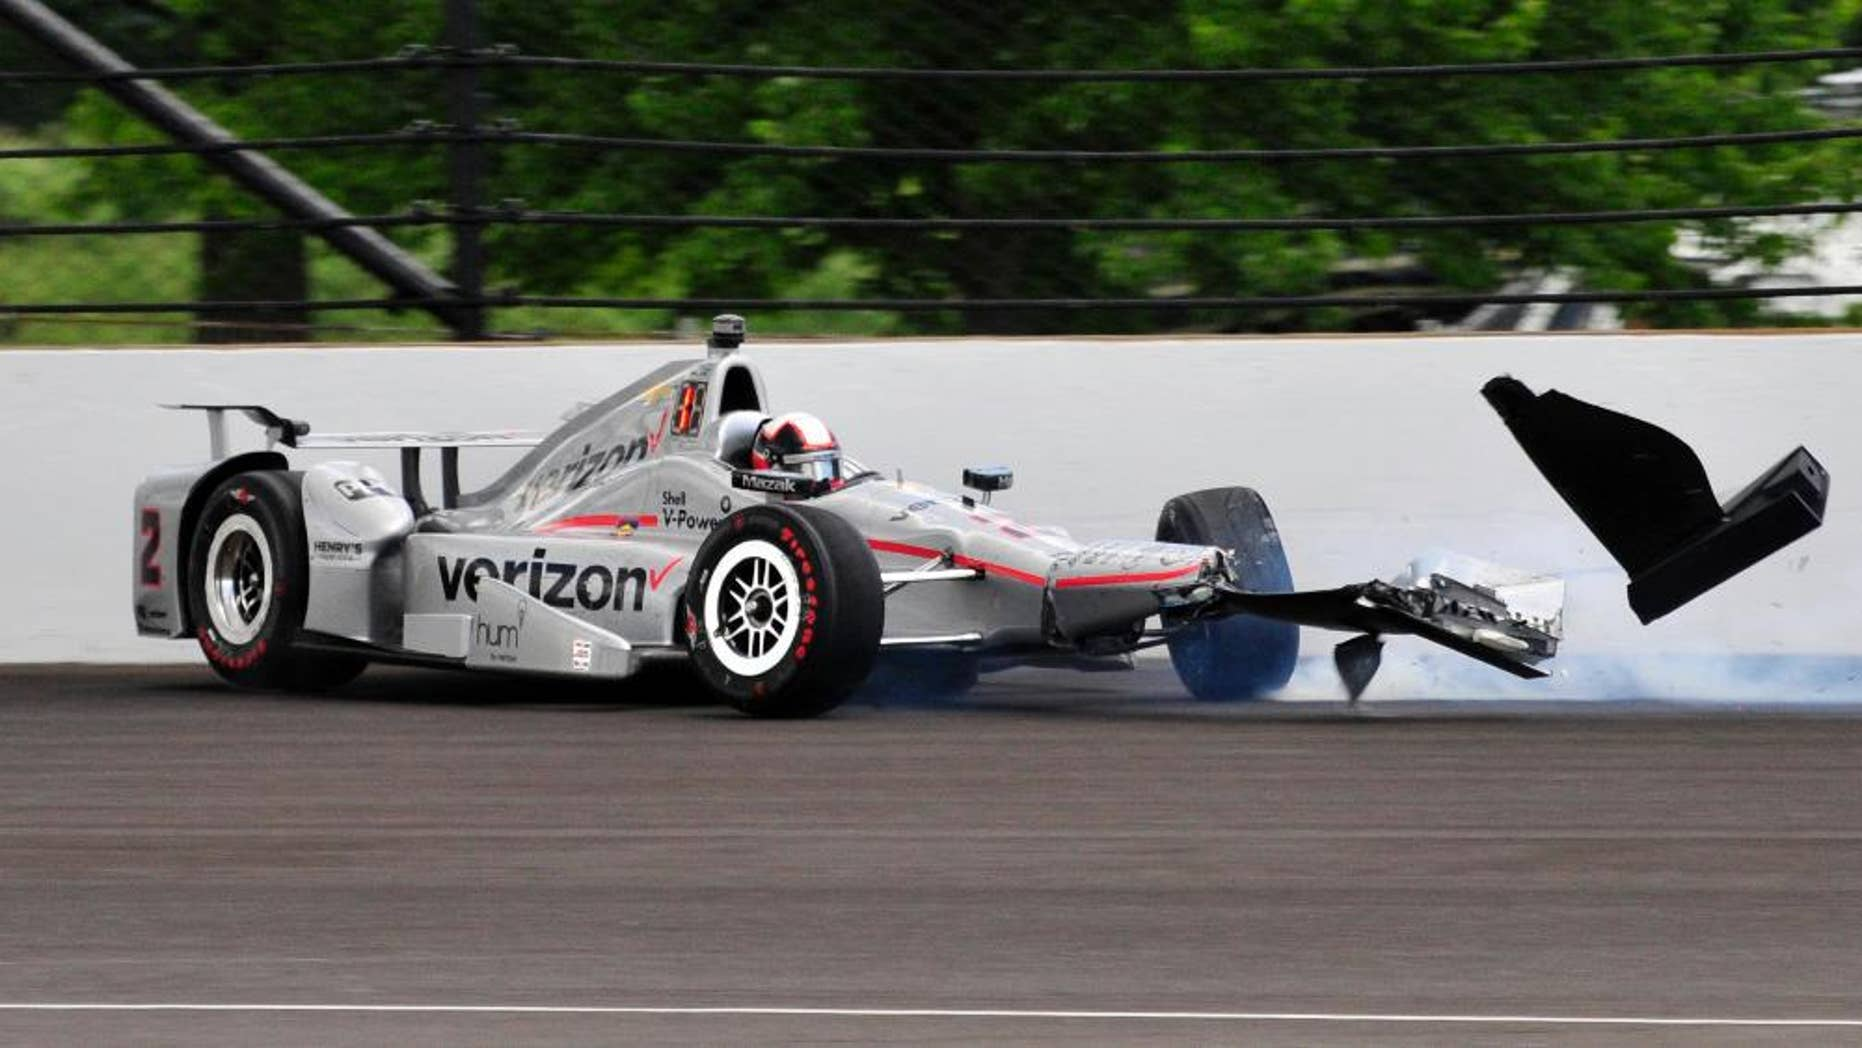 The car driven by Juan Pablo Montoya, of Colombia, hits the wall int he second turn during the 100th running of the Indianapolis 500 auto race at Indianapolis Motor Speedway in Indianapolis, Sunday, May 29, 2016. (AP Photo/John Maxwell)